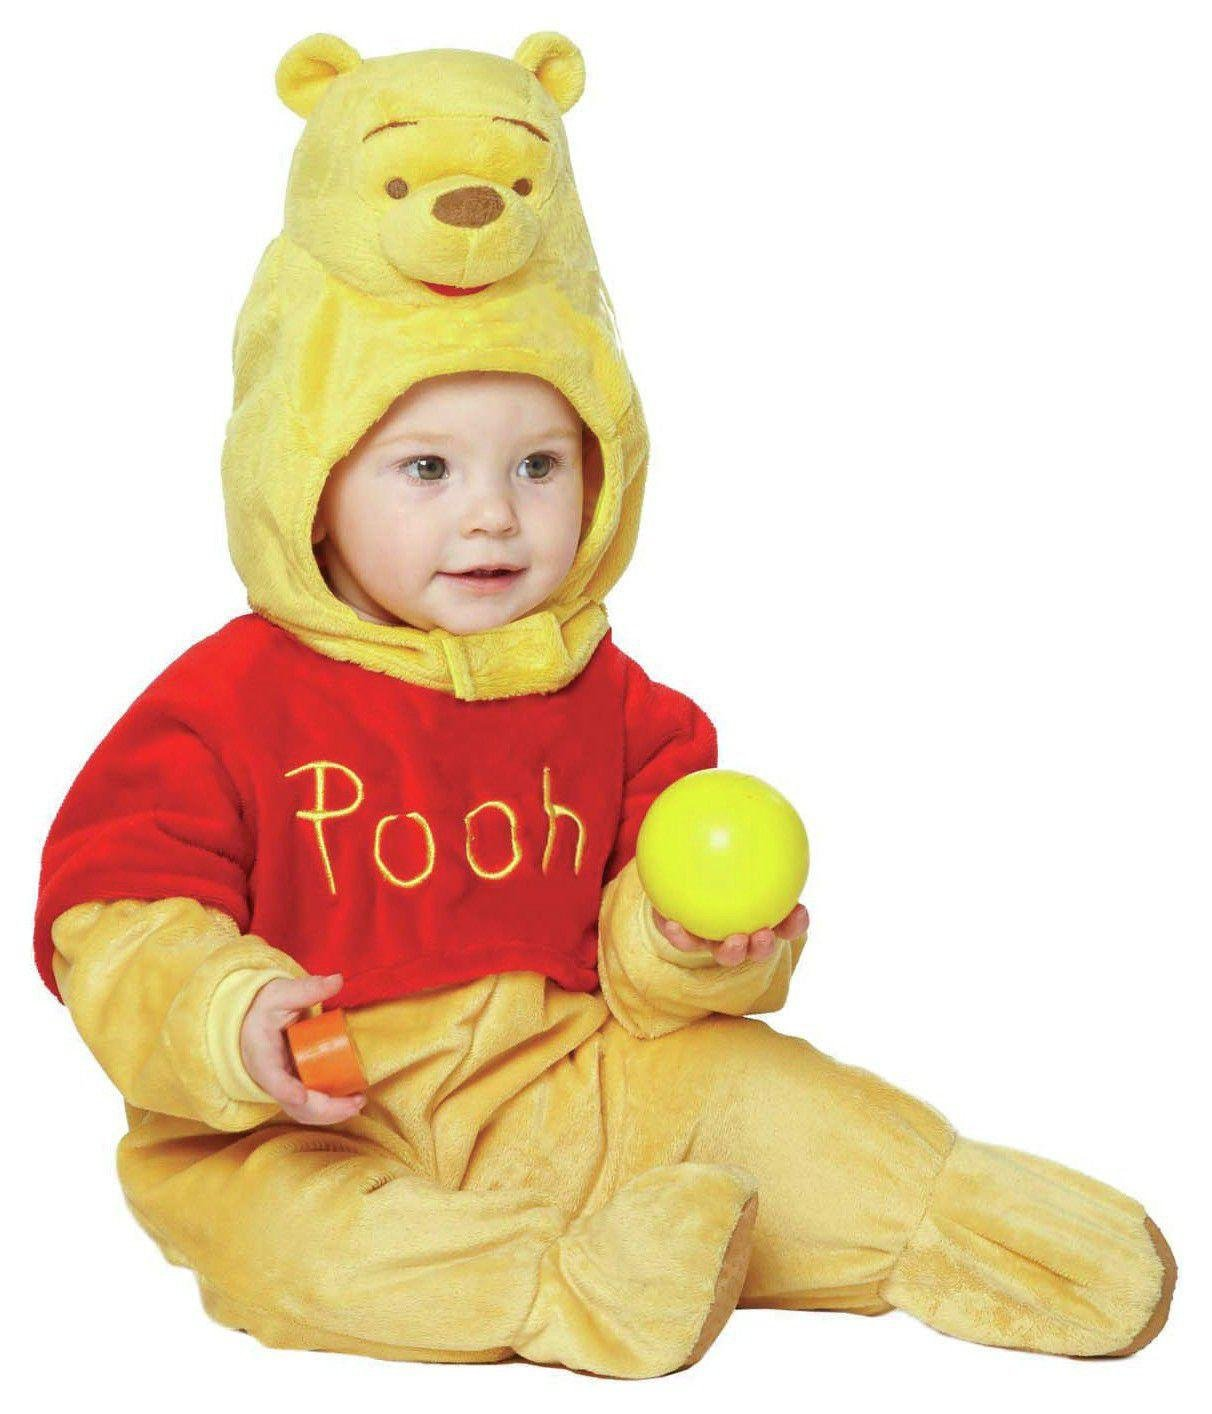 Disney Baby Winnie the Pooh with Moulded Head - 6-12 Months.